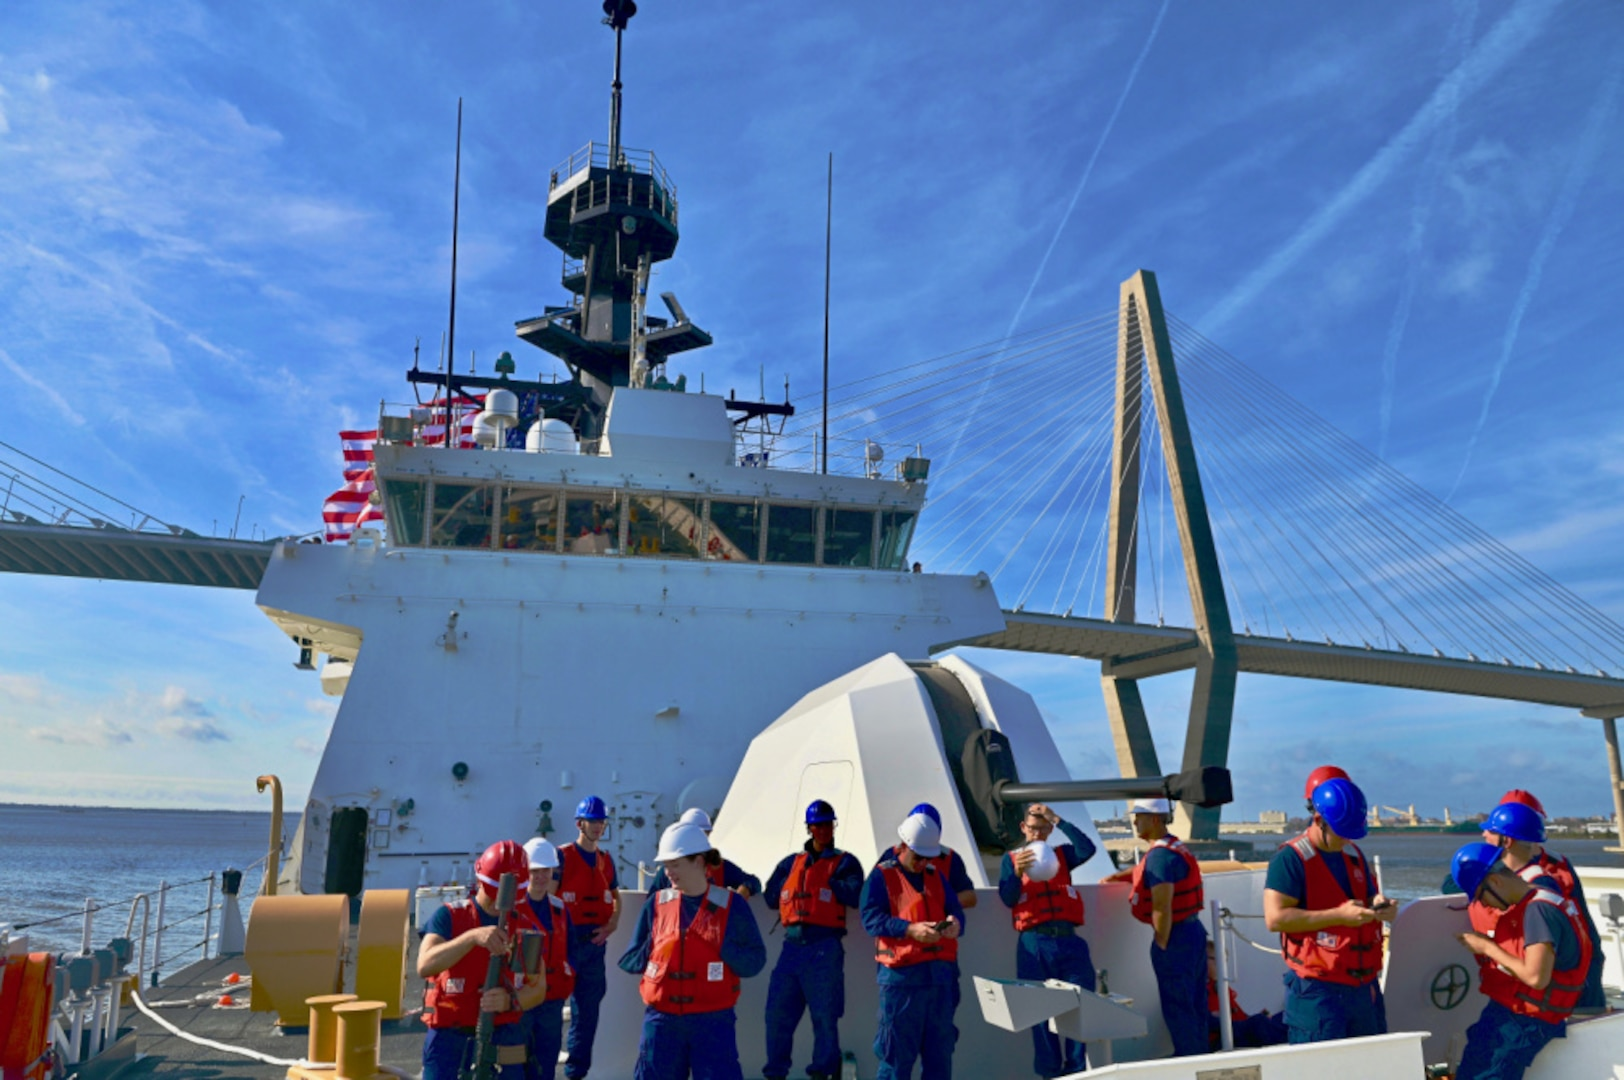 USCGC Stone arrives home after Operation Southern Cross